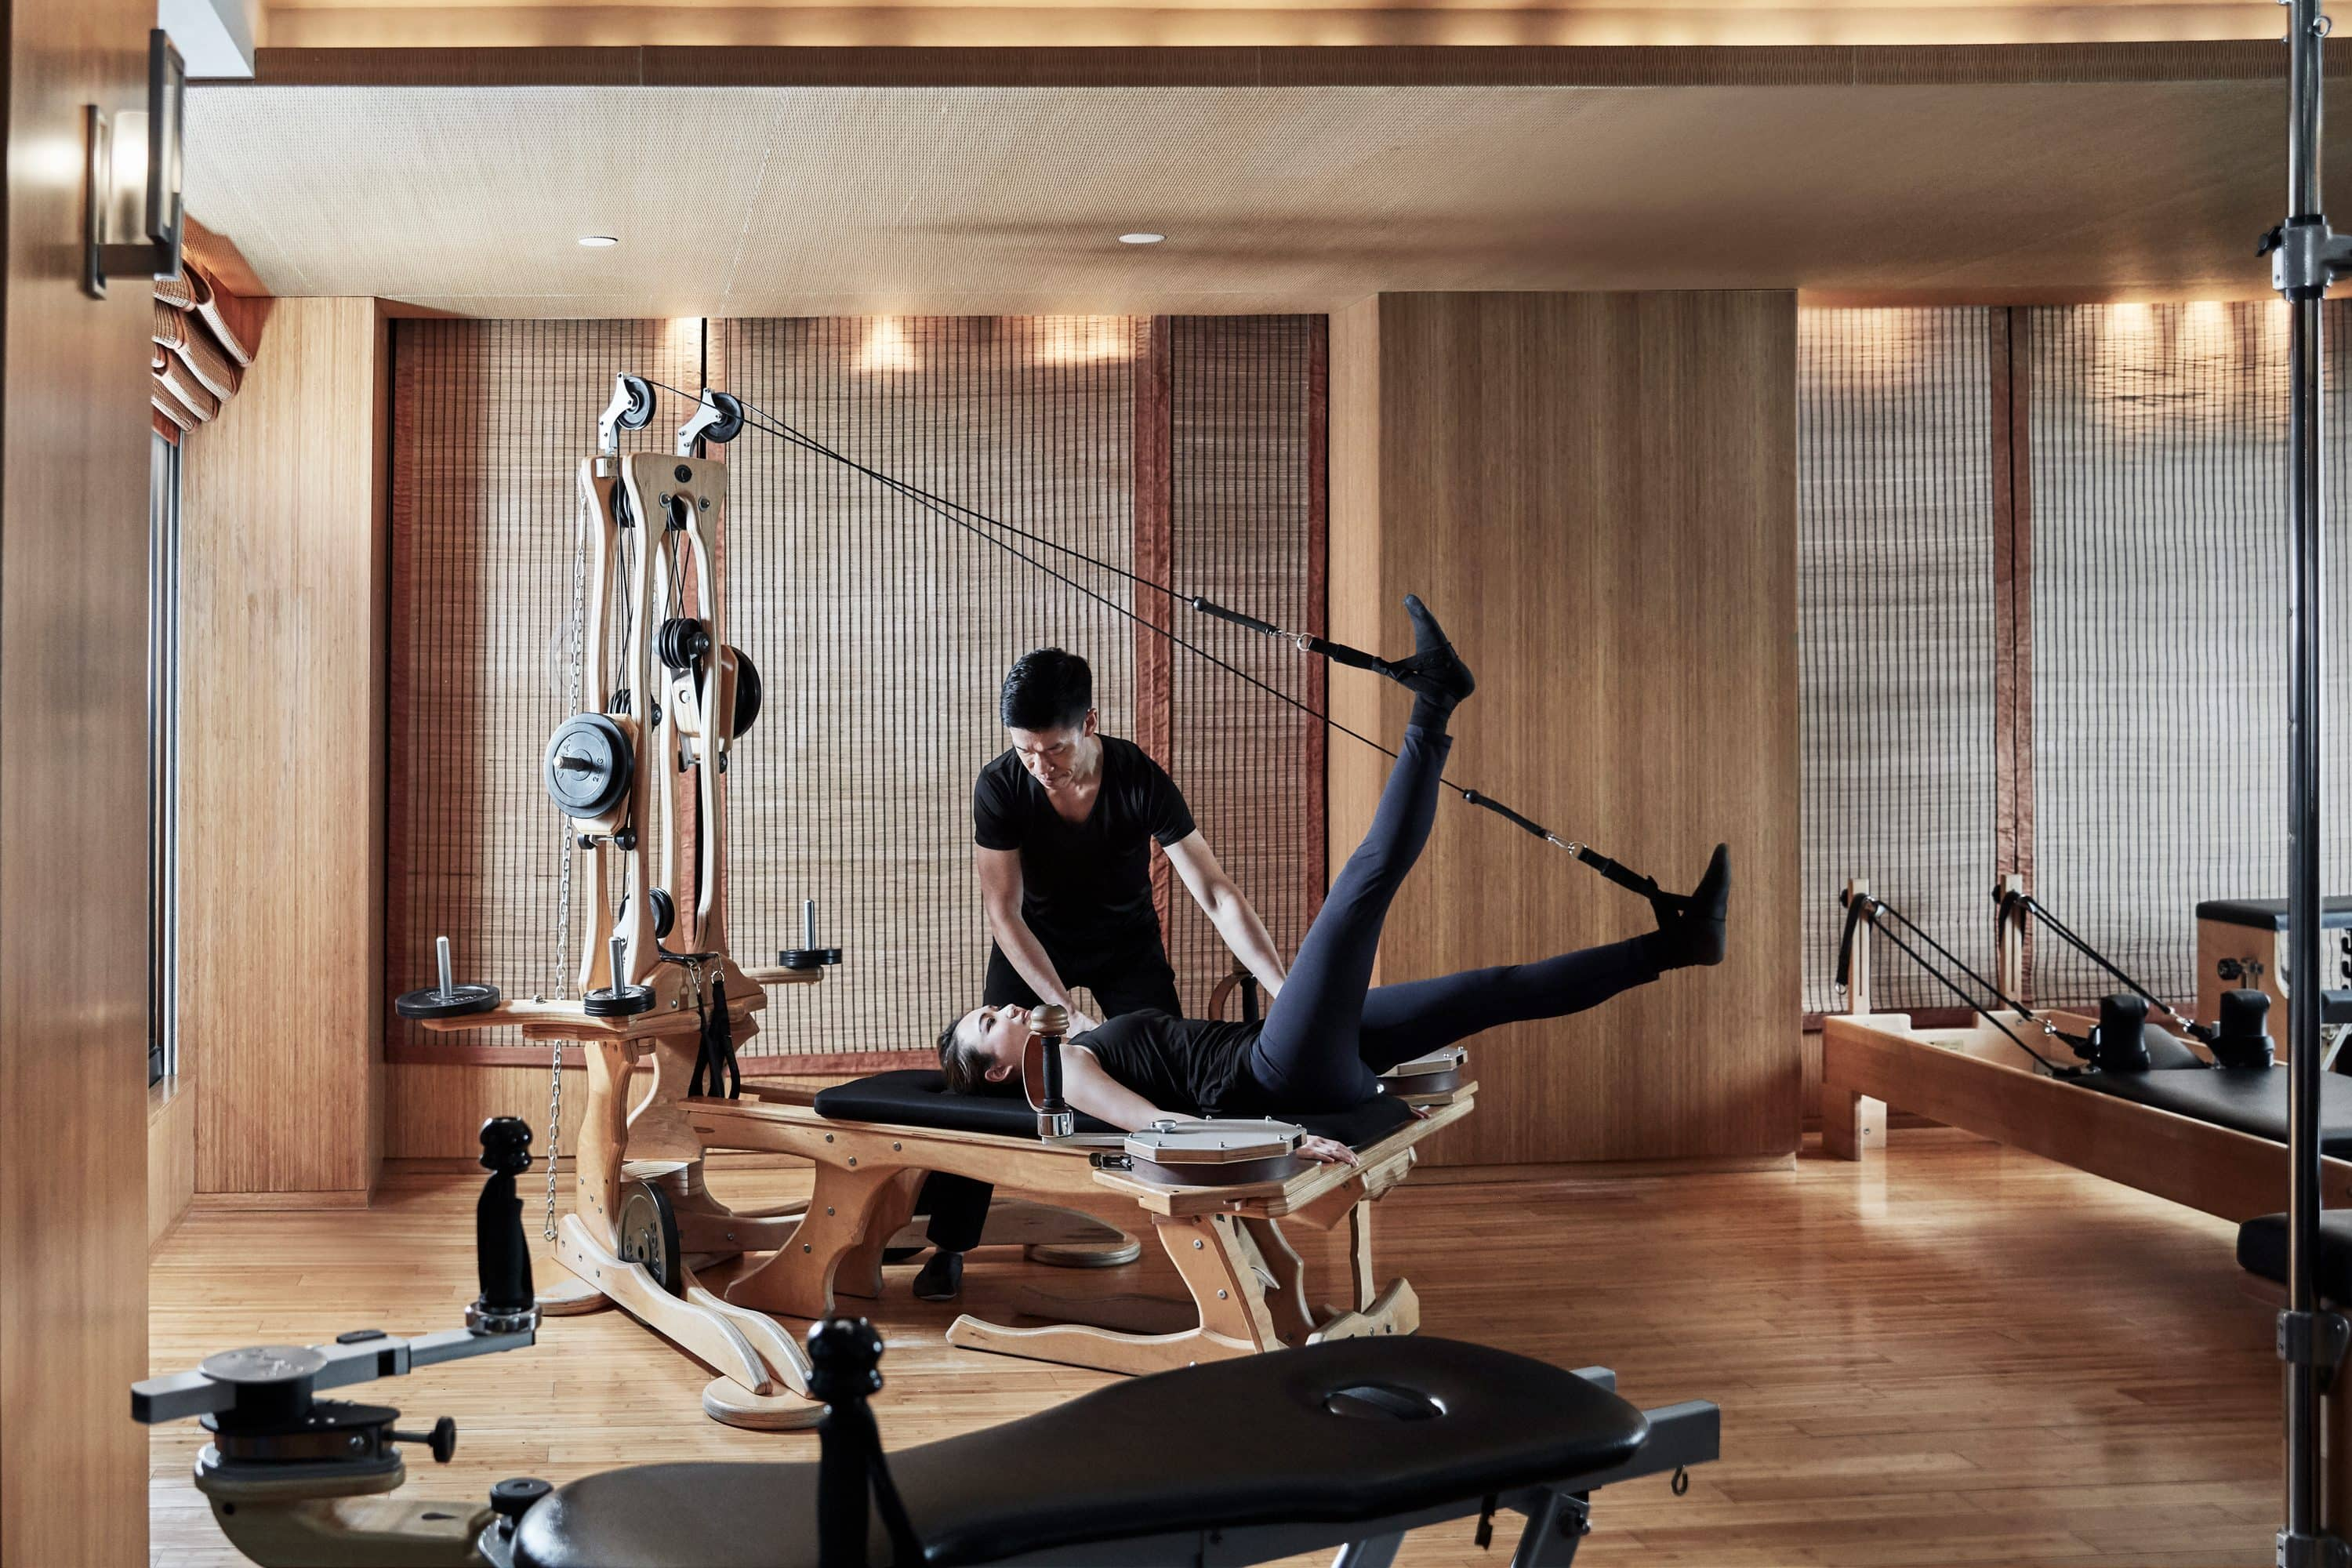 A guest exercising with a trainer in the gym